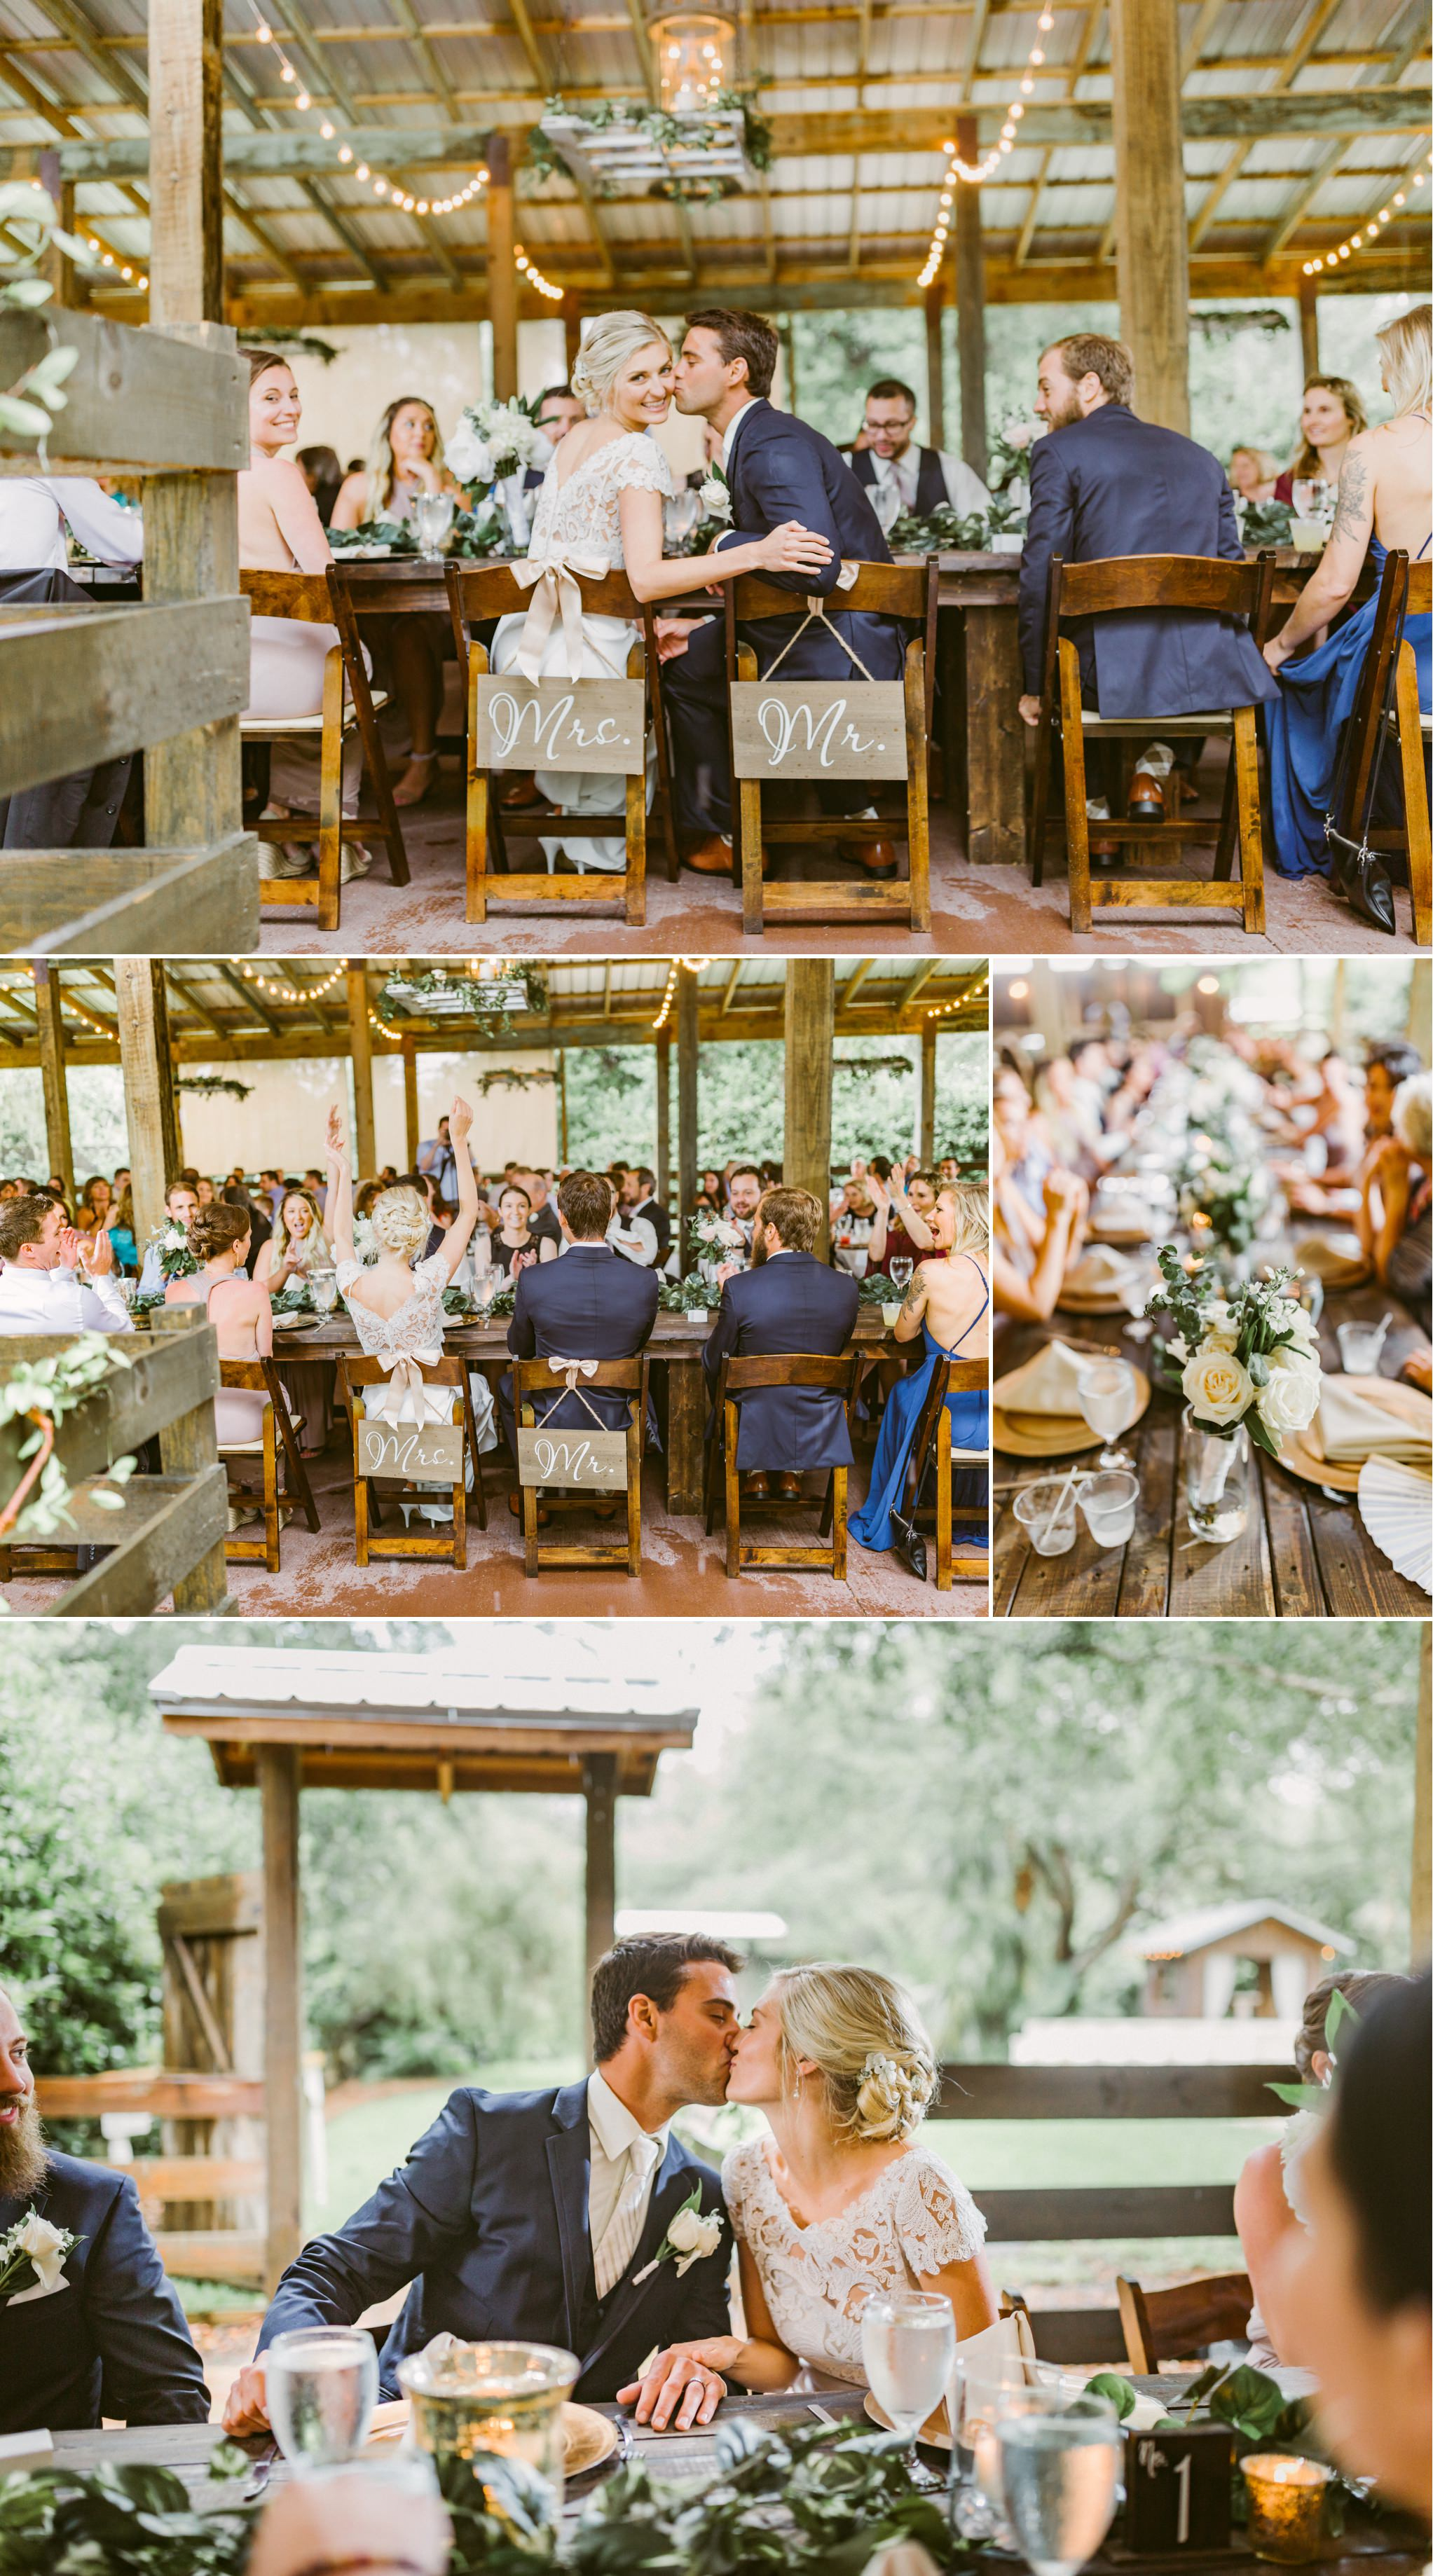 Boho Chic Orlando Wedding Photography Delameter House - Angela + Max 23.jpg